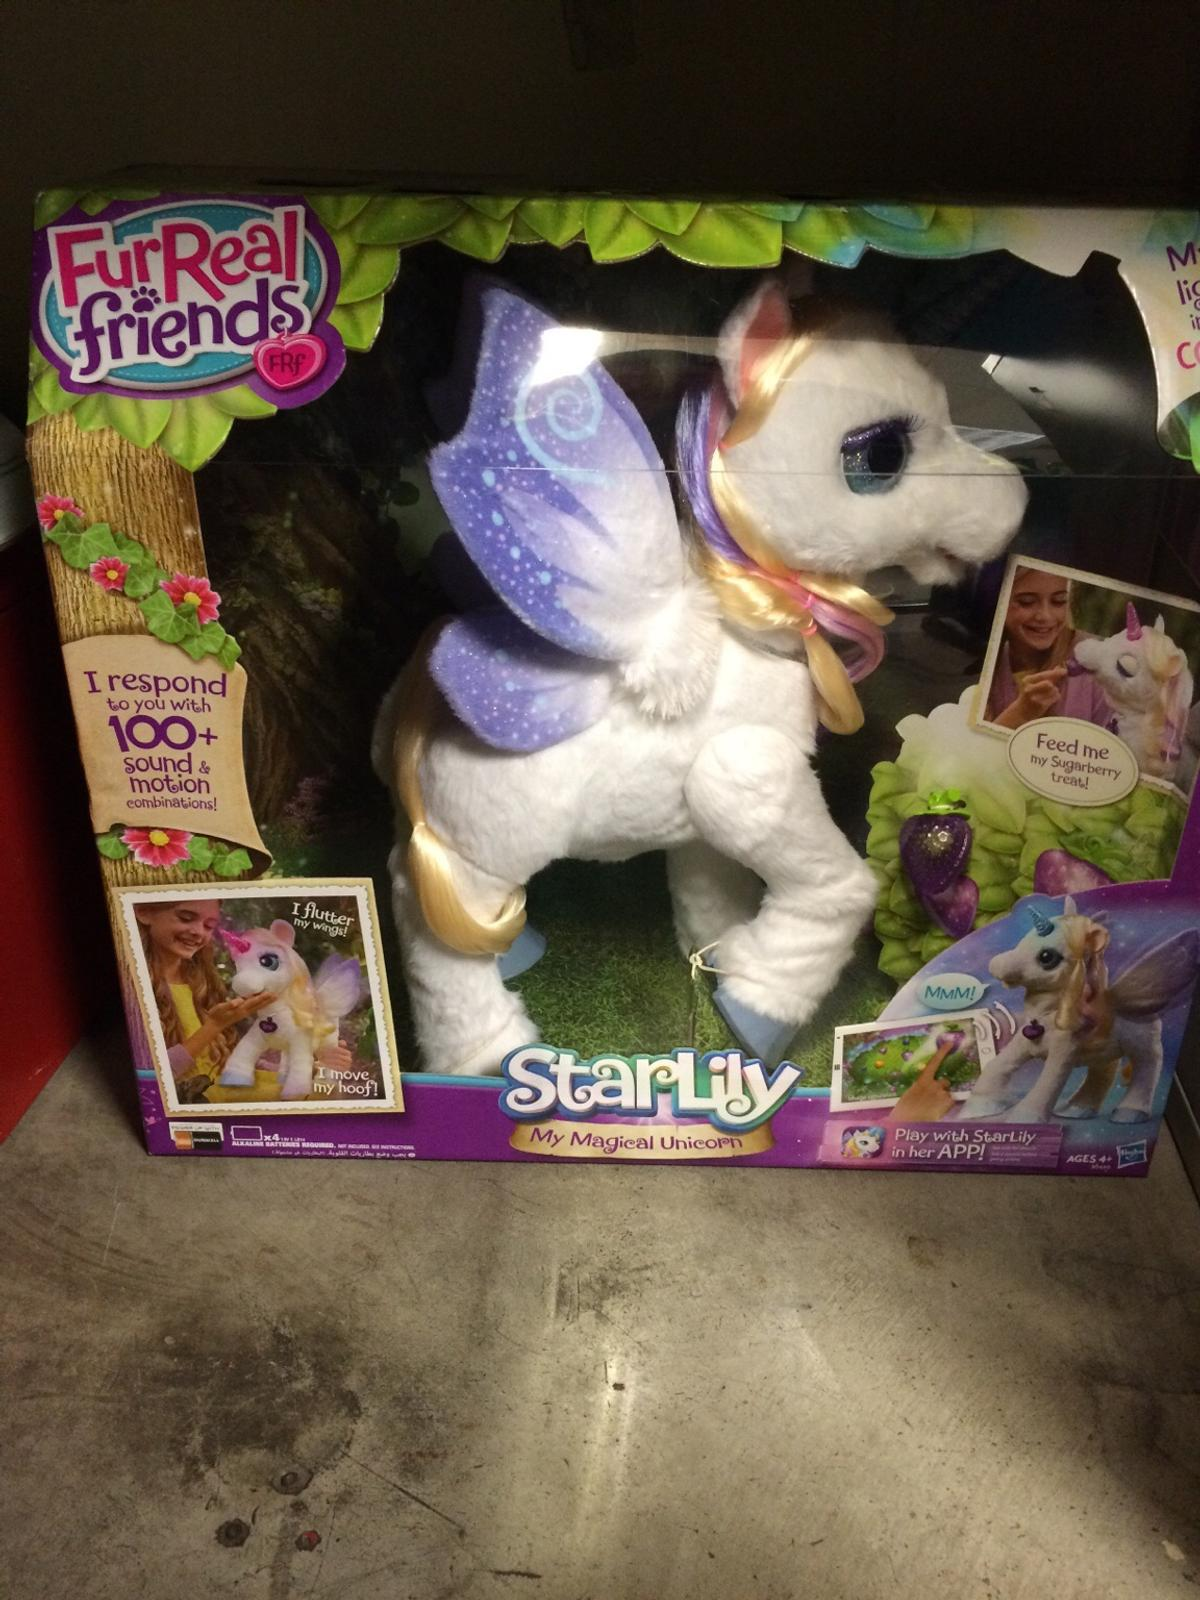 Fur Real Friends Star Lily Magical Unicorn